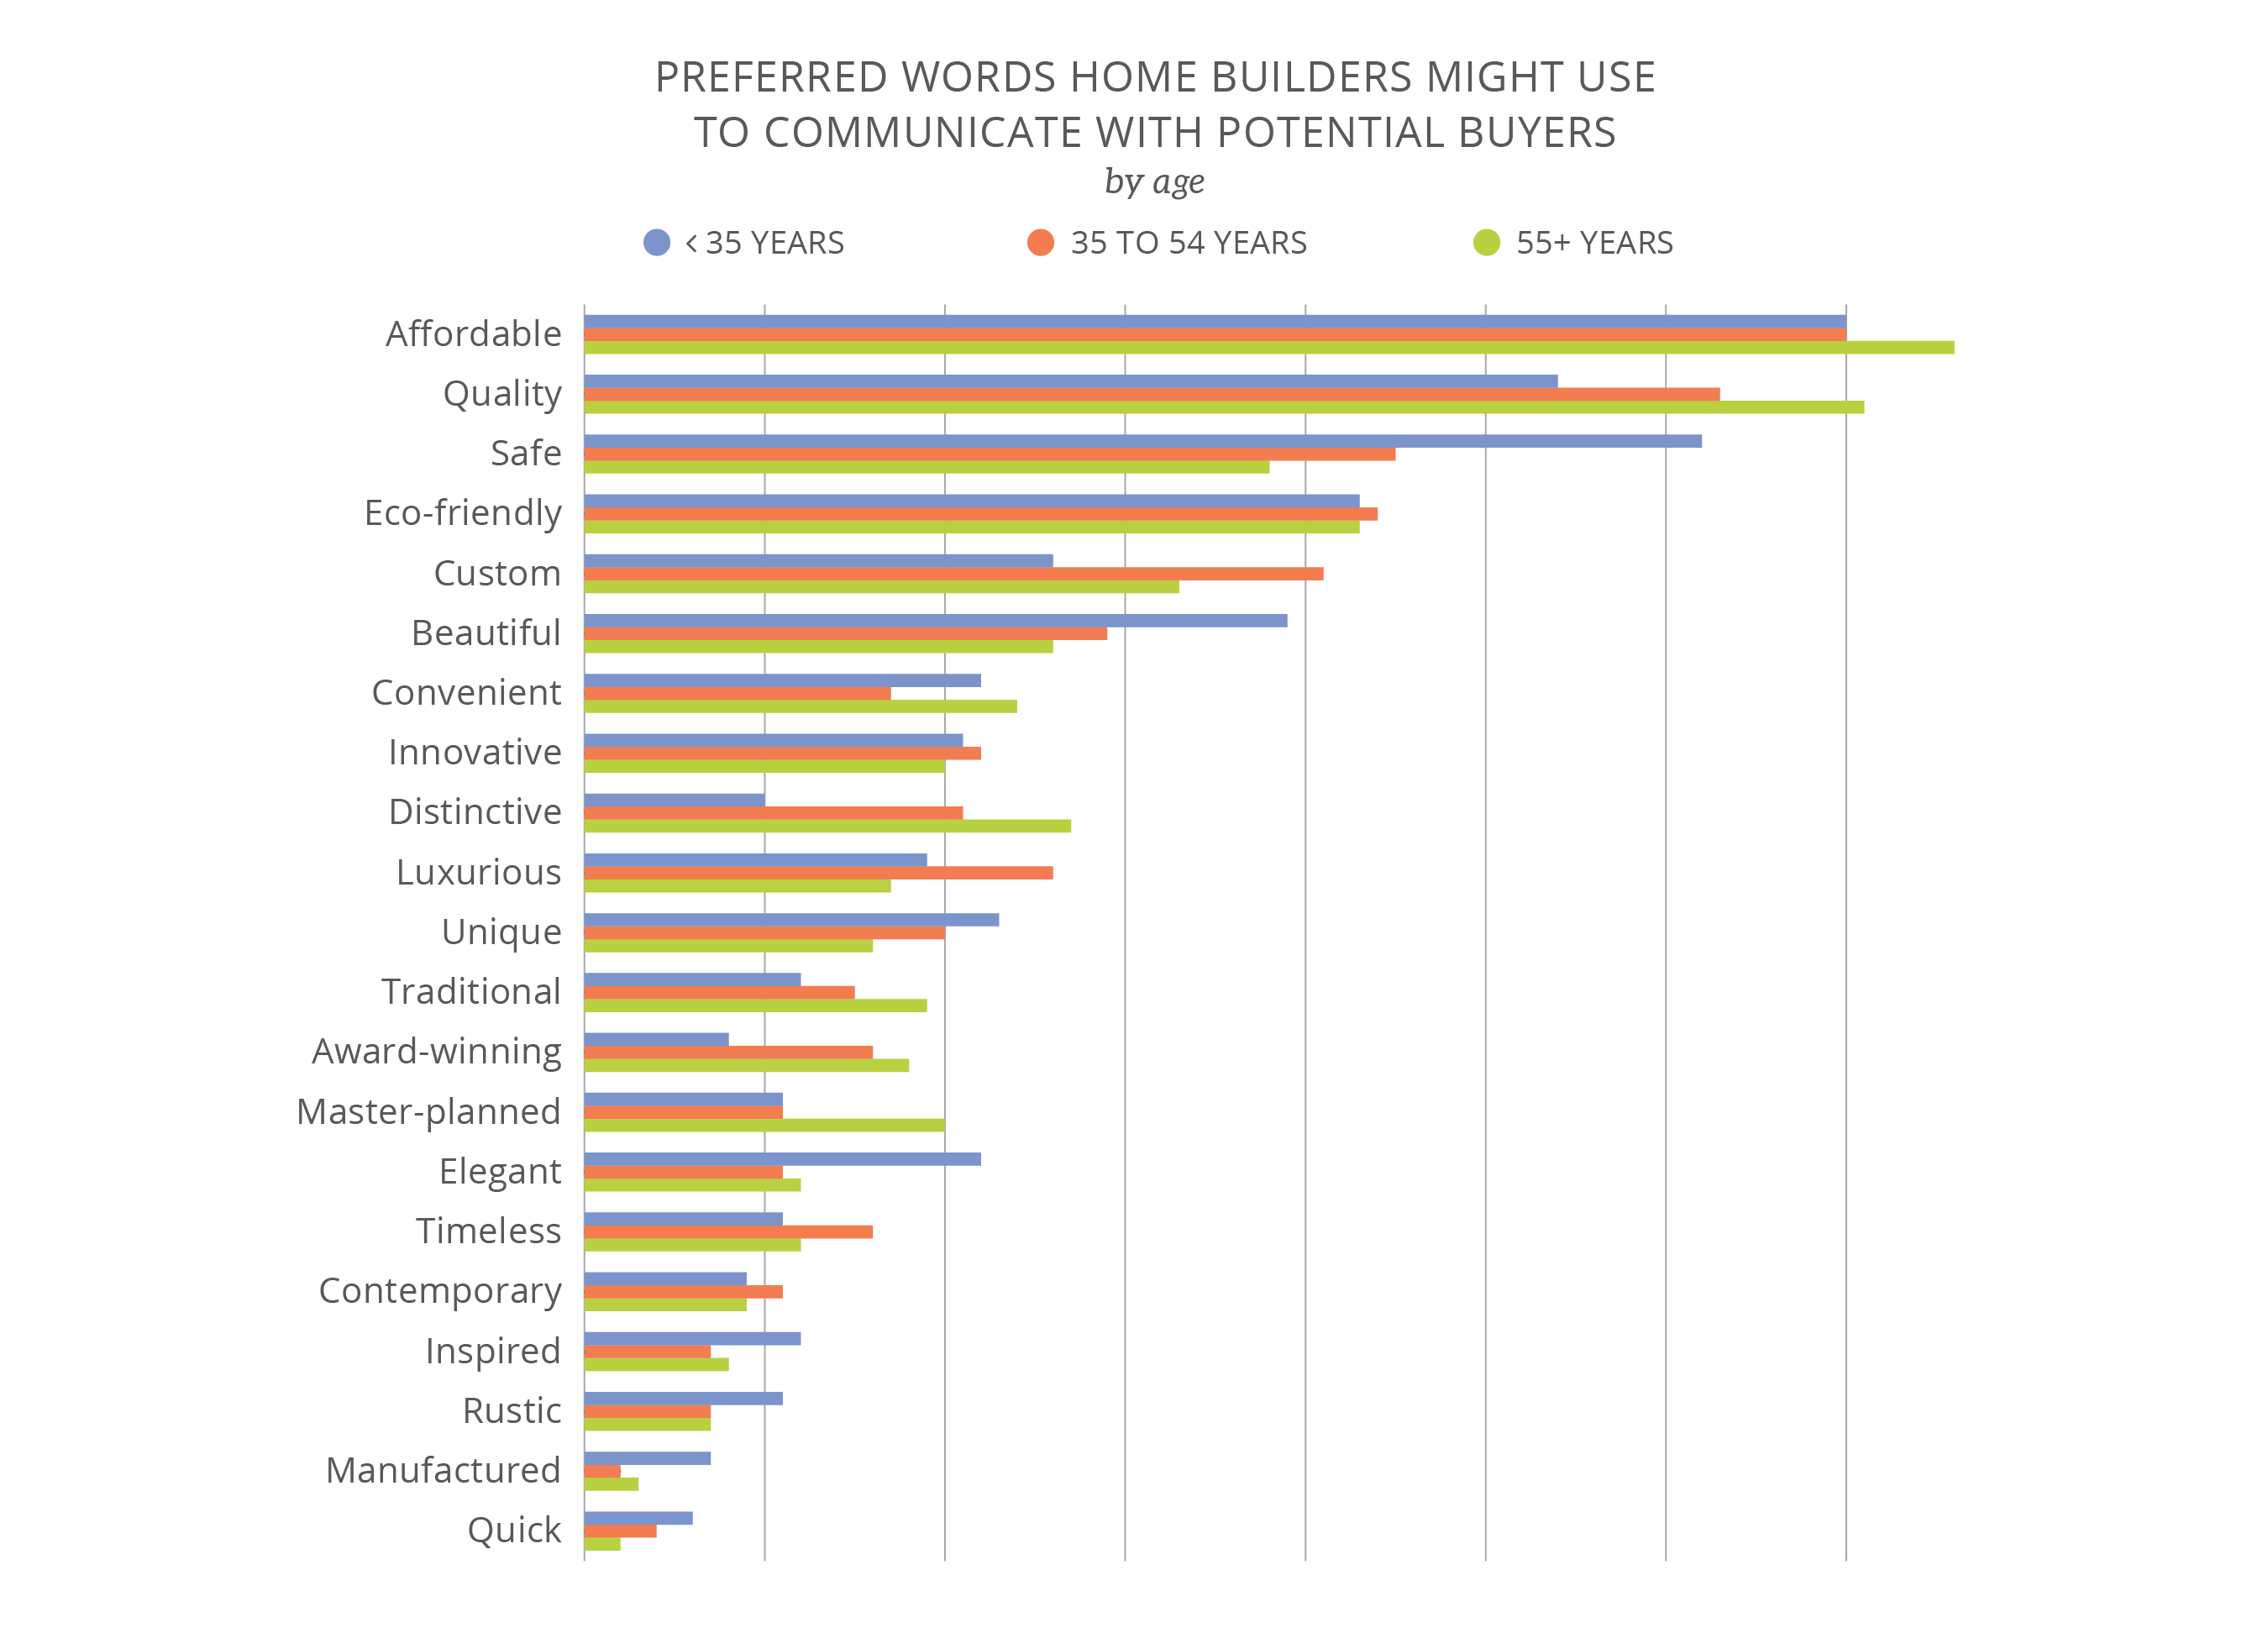 Age influences the words home buyers prefer in marketing materials.